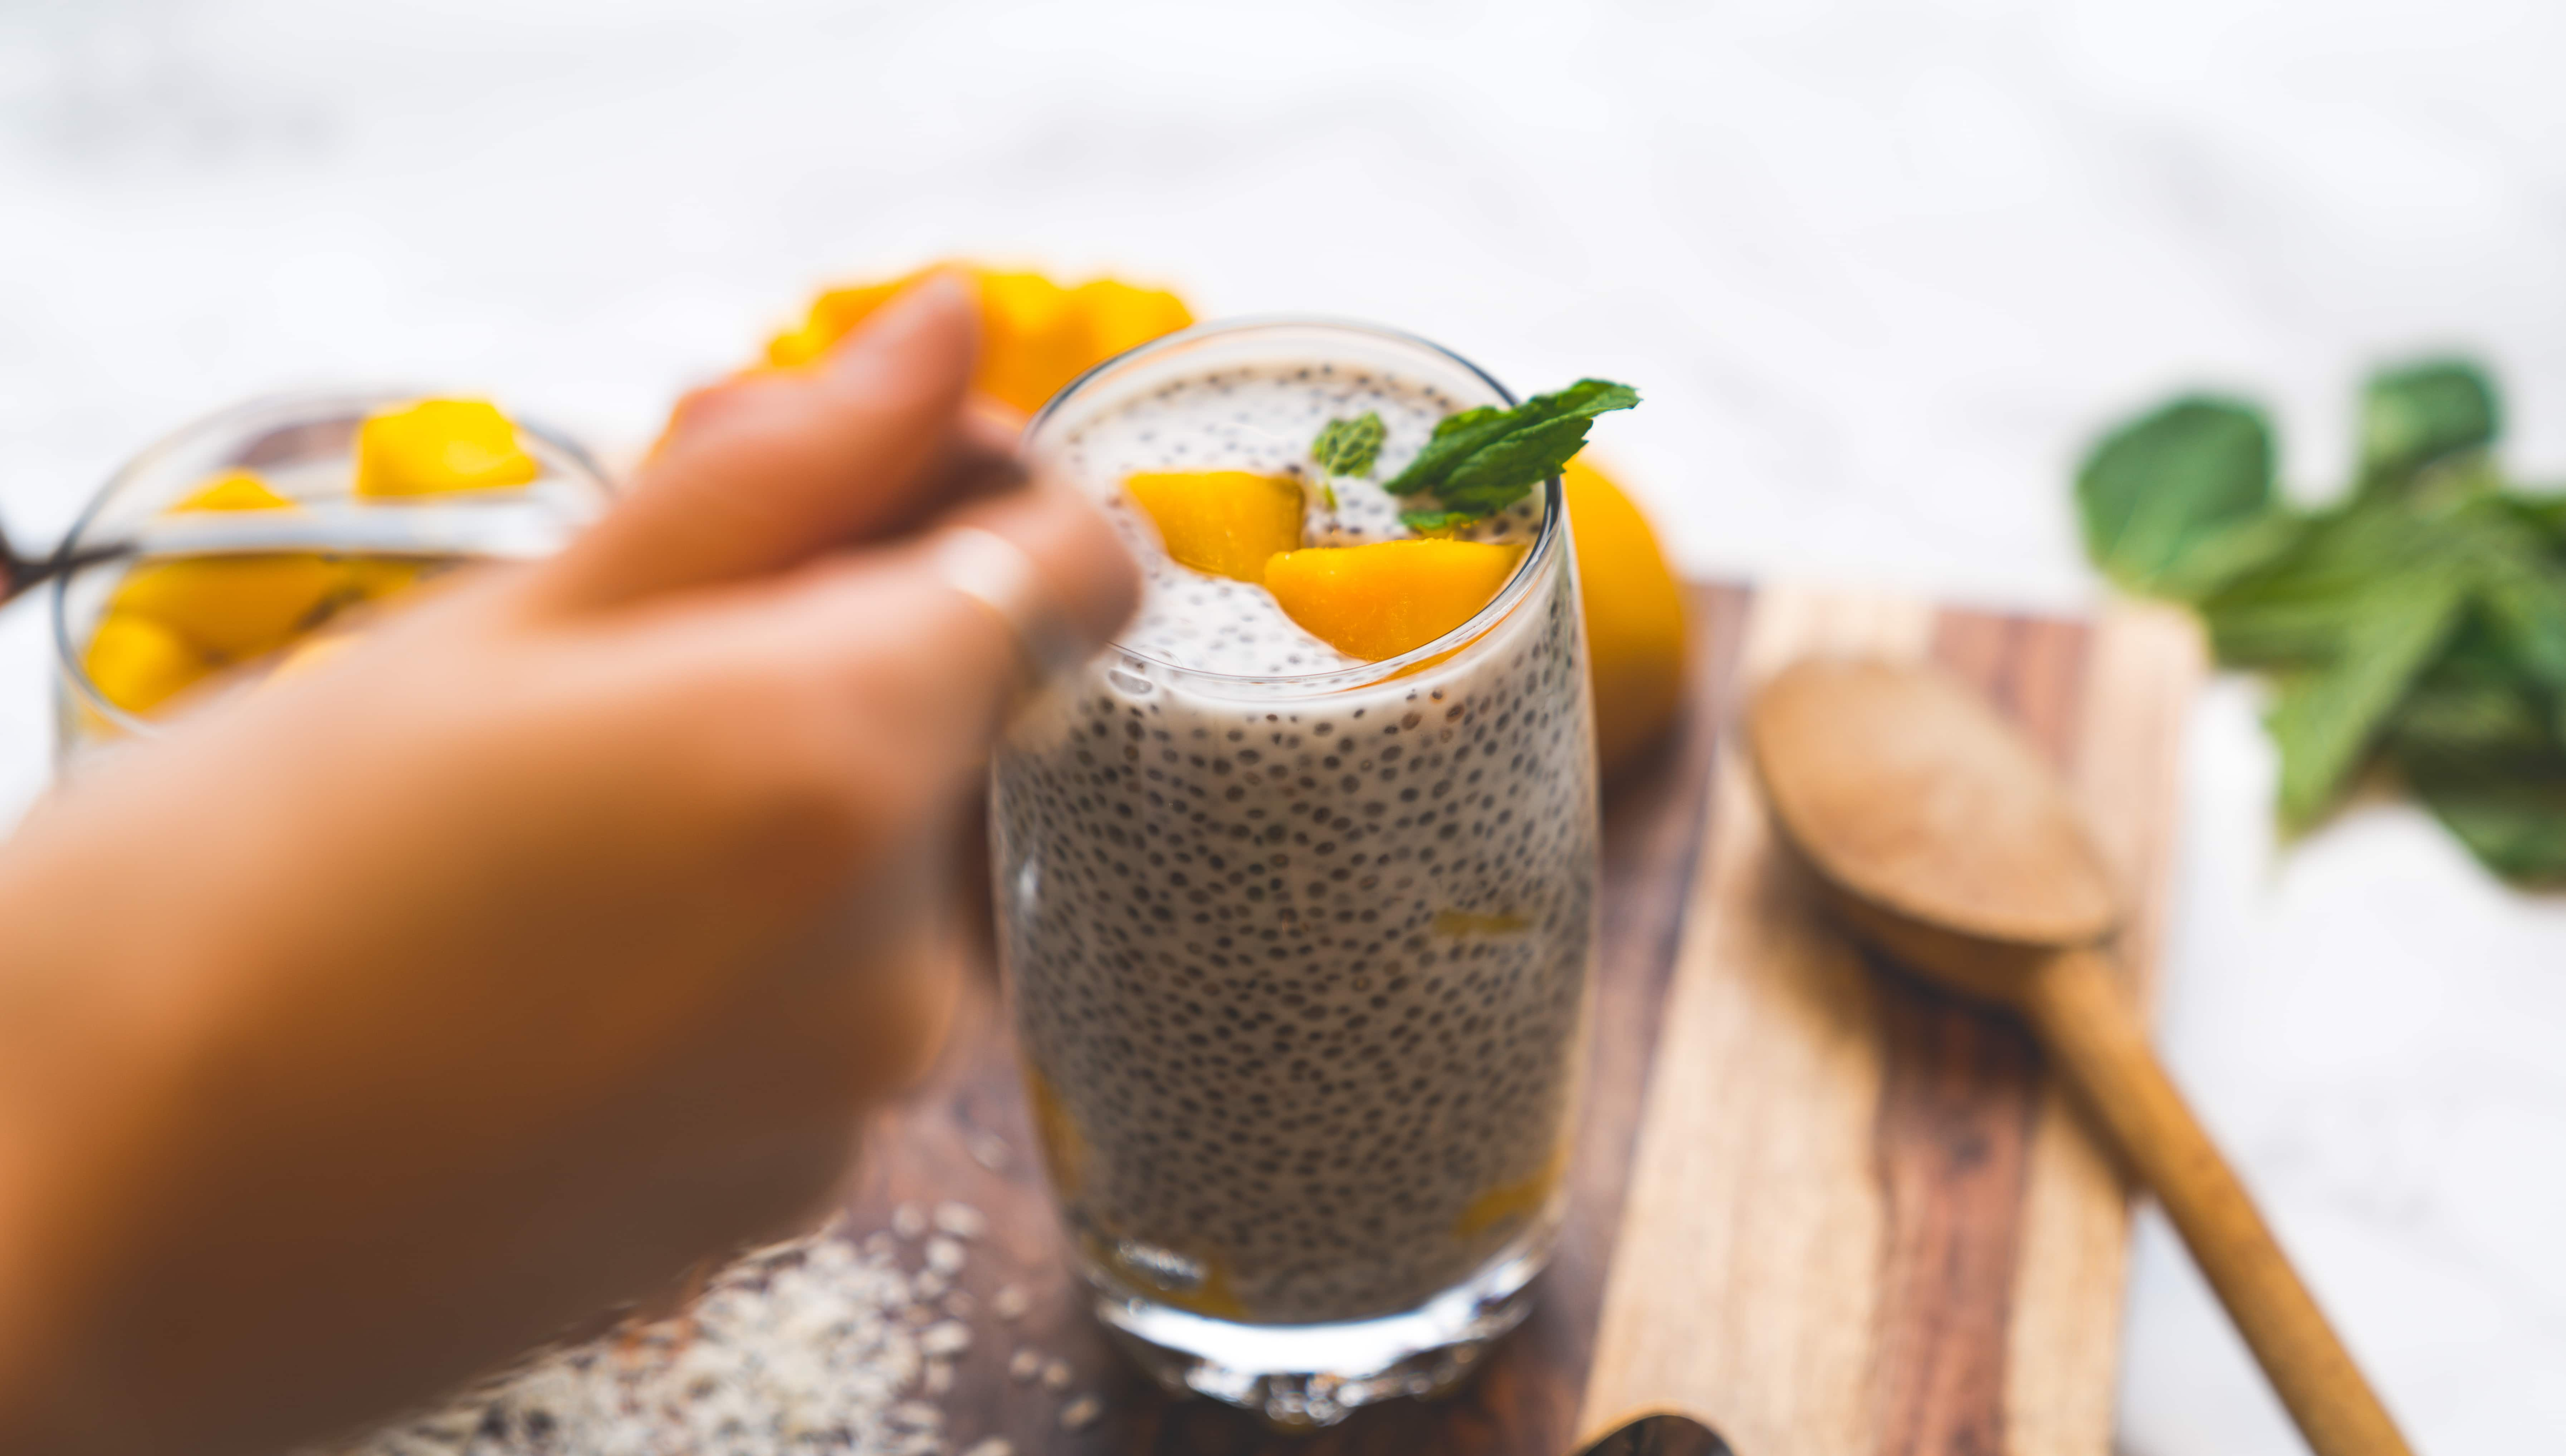 chia seeds - foods for strong bones